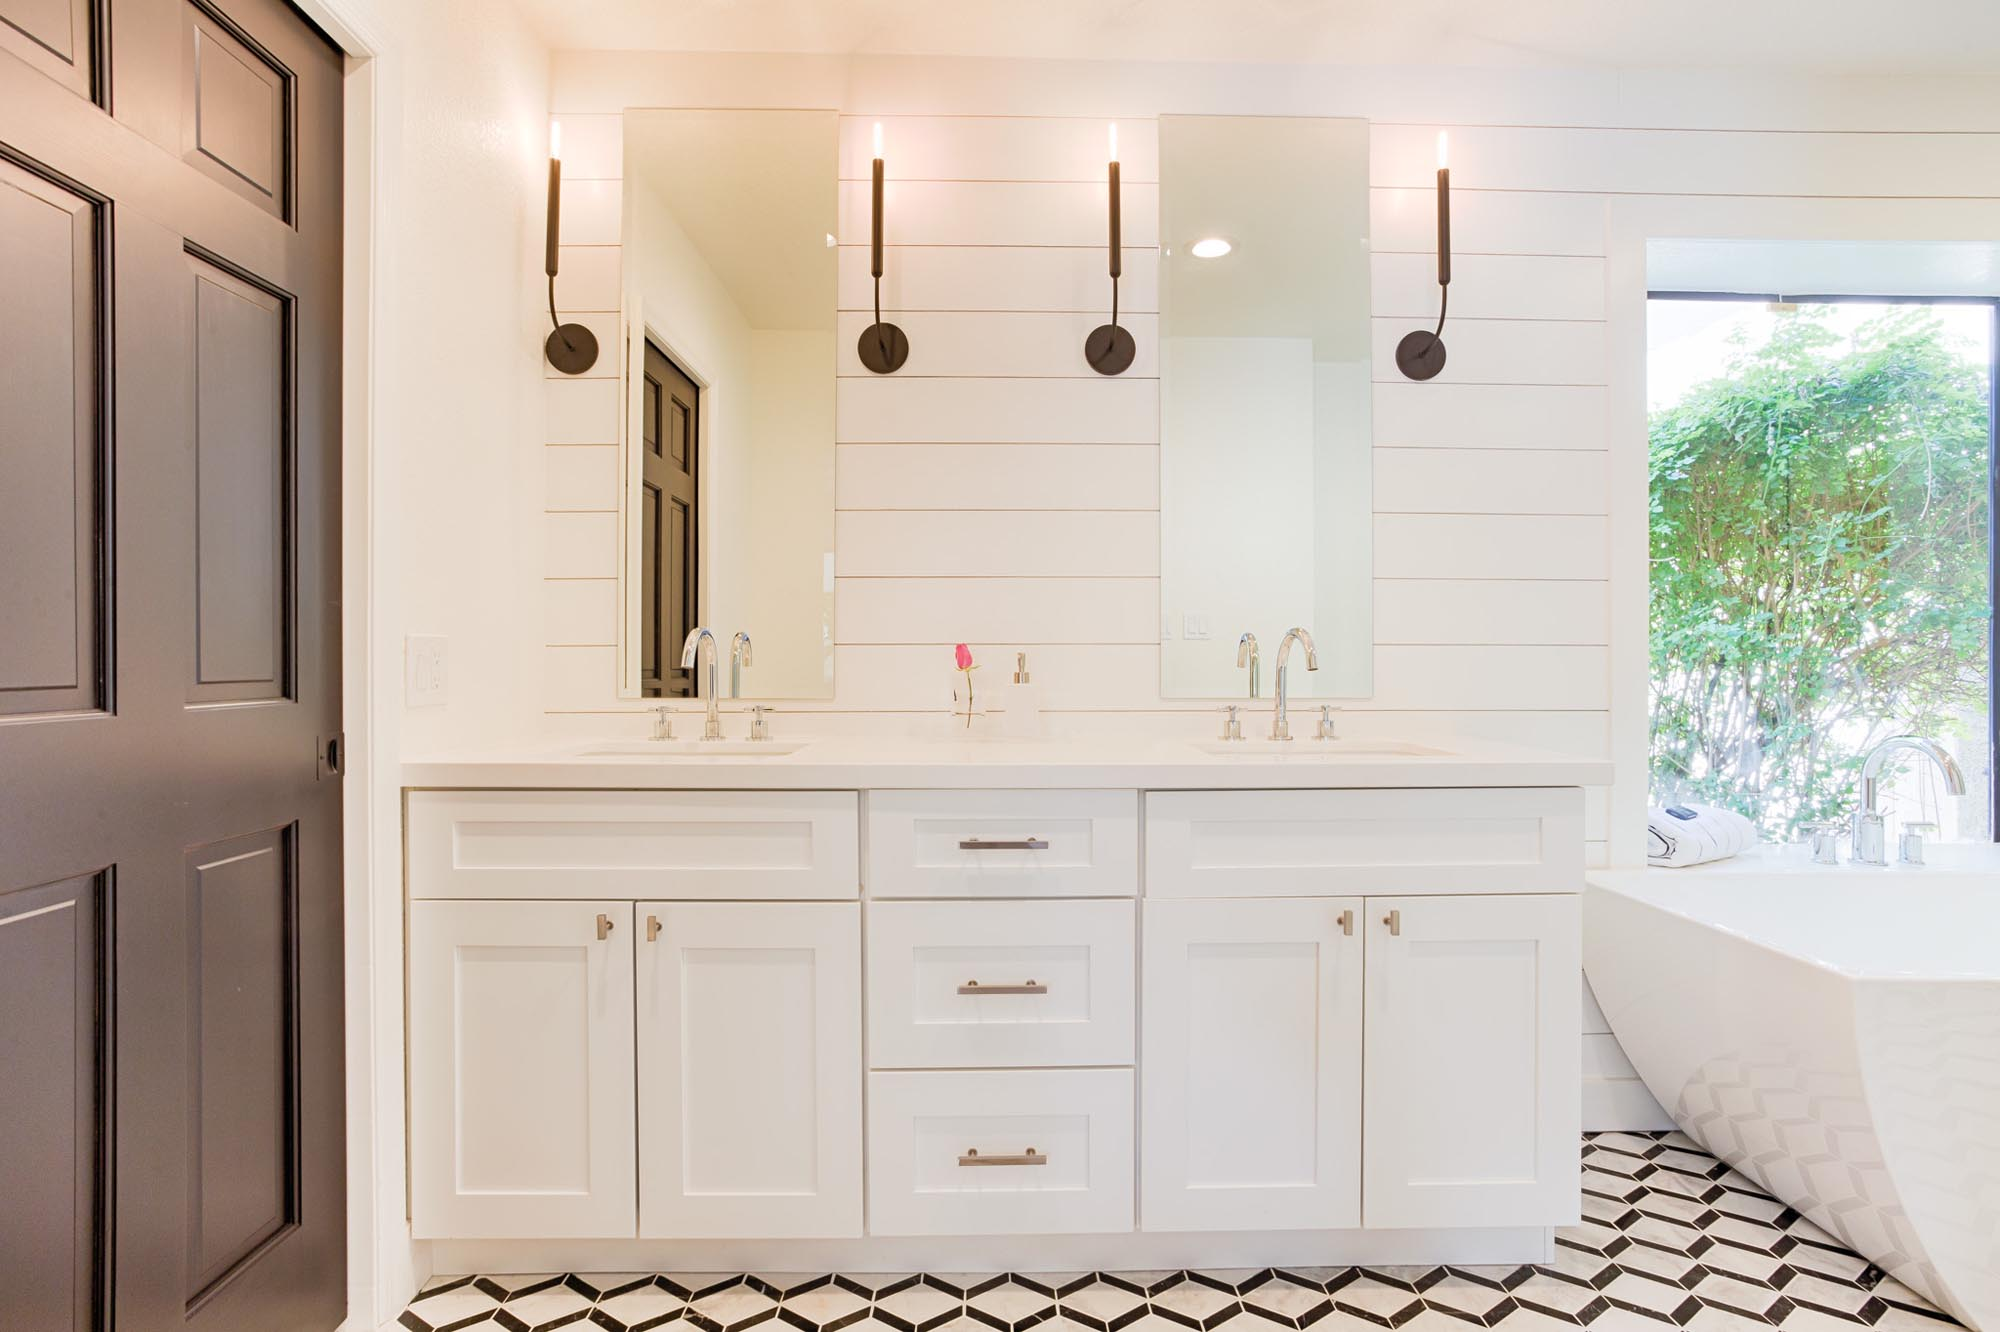 Bathroom with white countertops sink and cabinets with mirrors